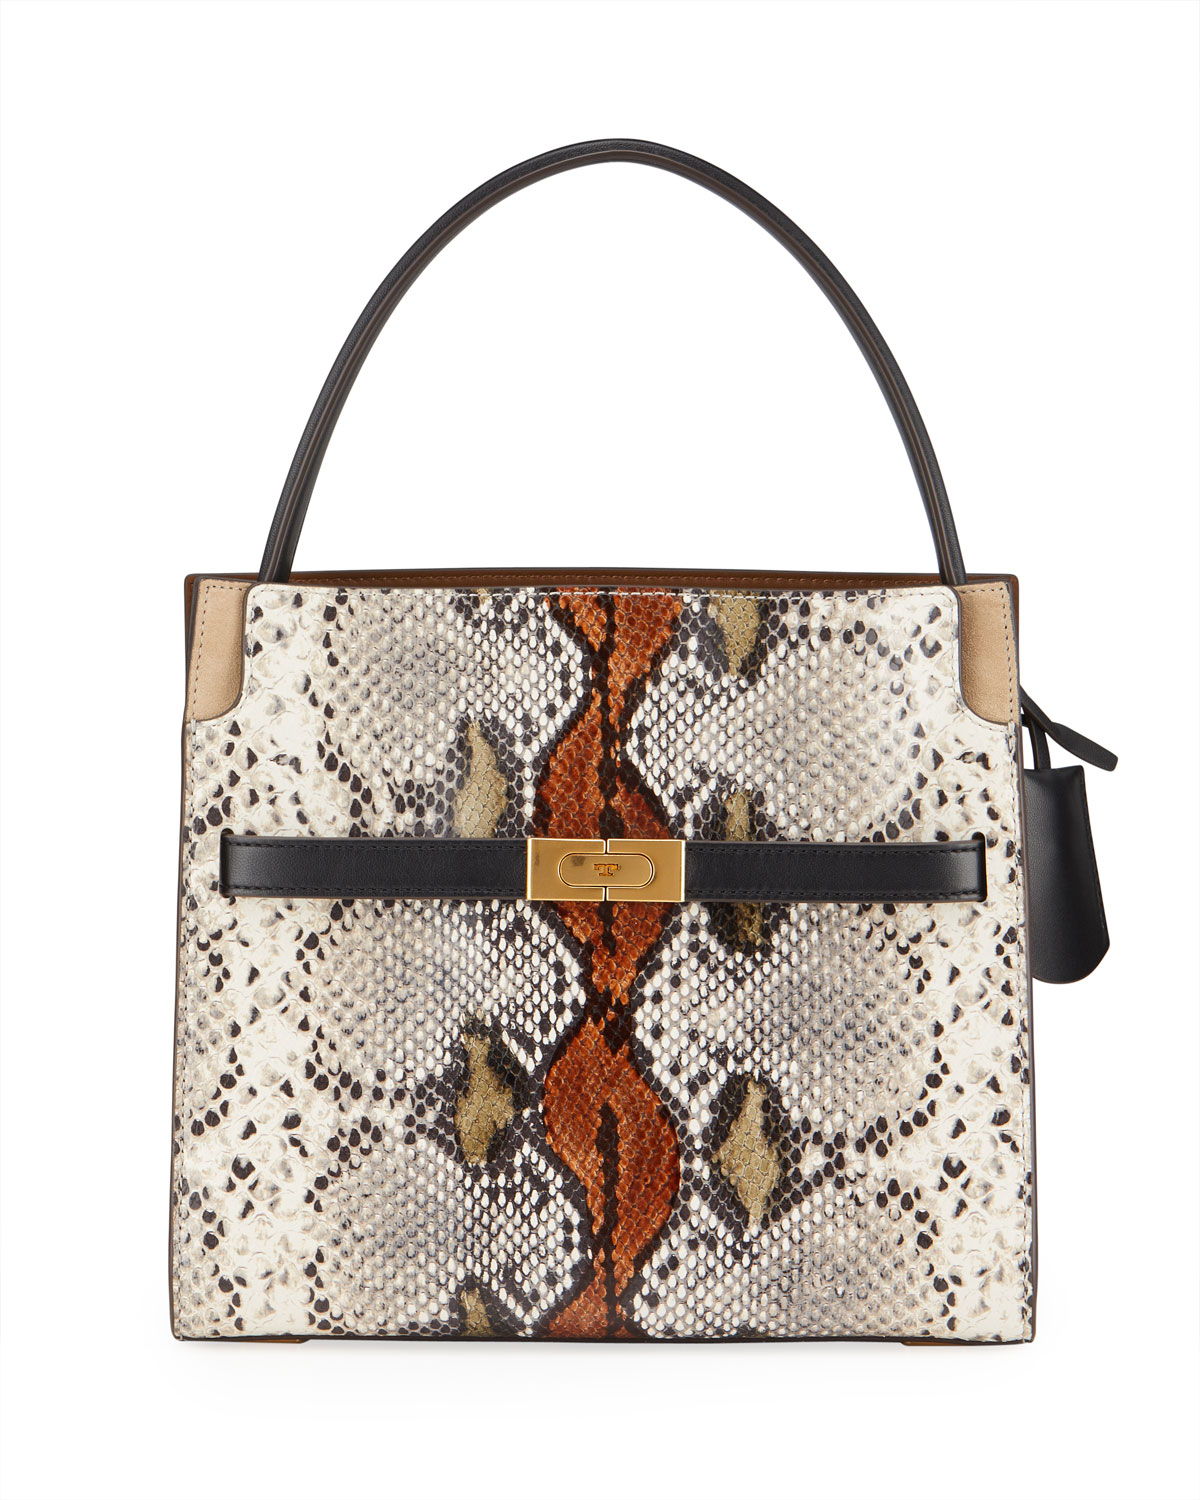 Tory Burch Lee Radziwill Exotic Small Double Bag